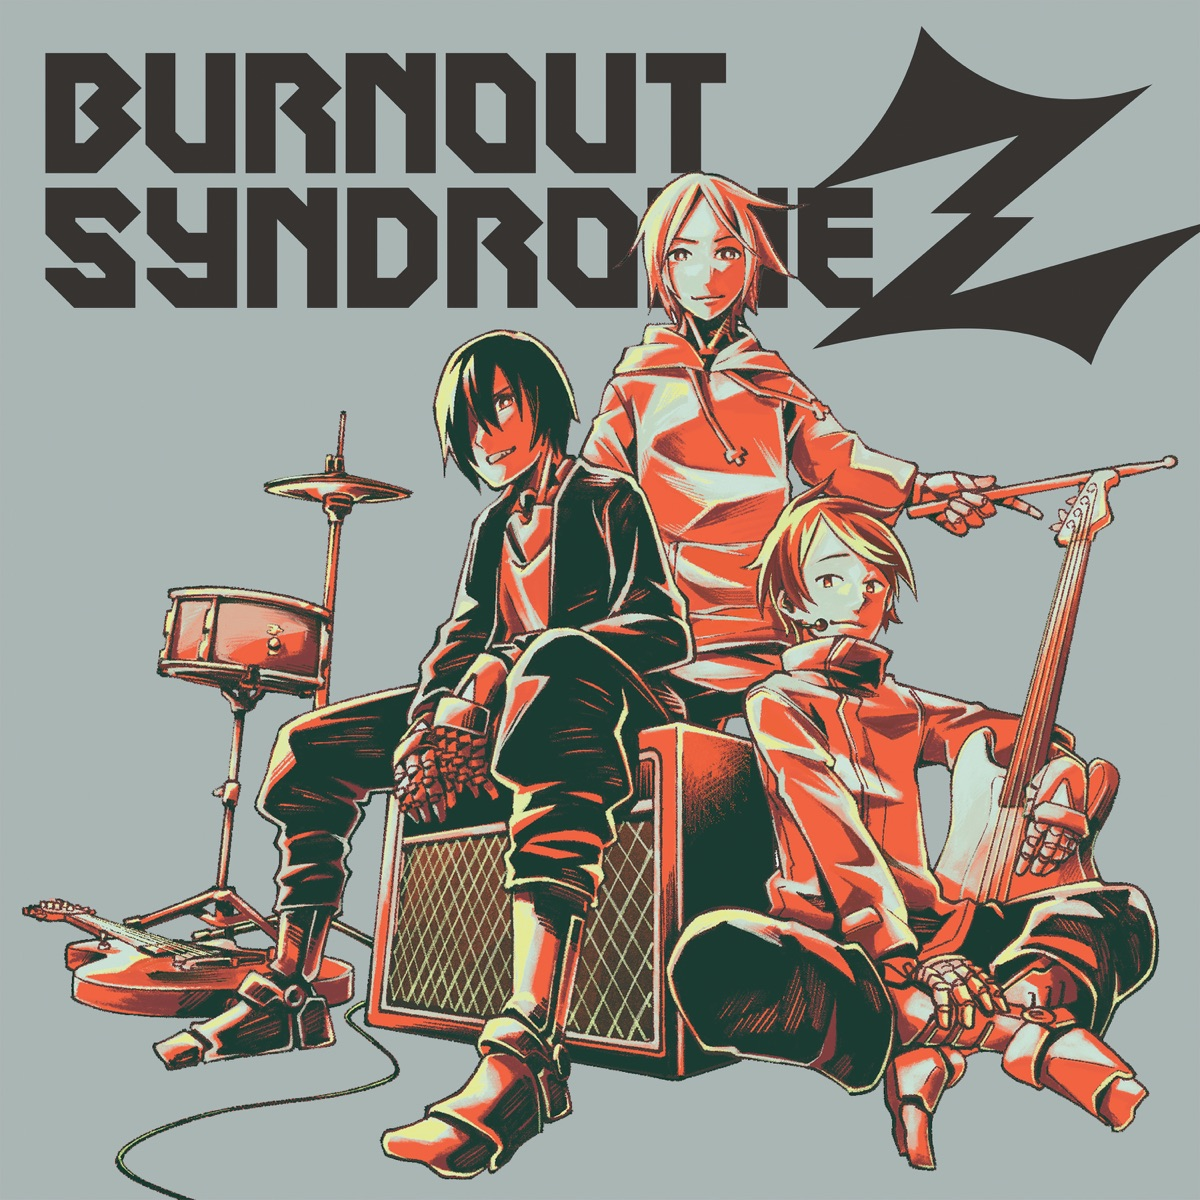 『BURNOUT SYNDROMESDream On!!』収録の『BURNOUT SYNDROMEZ』ジャケット